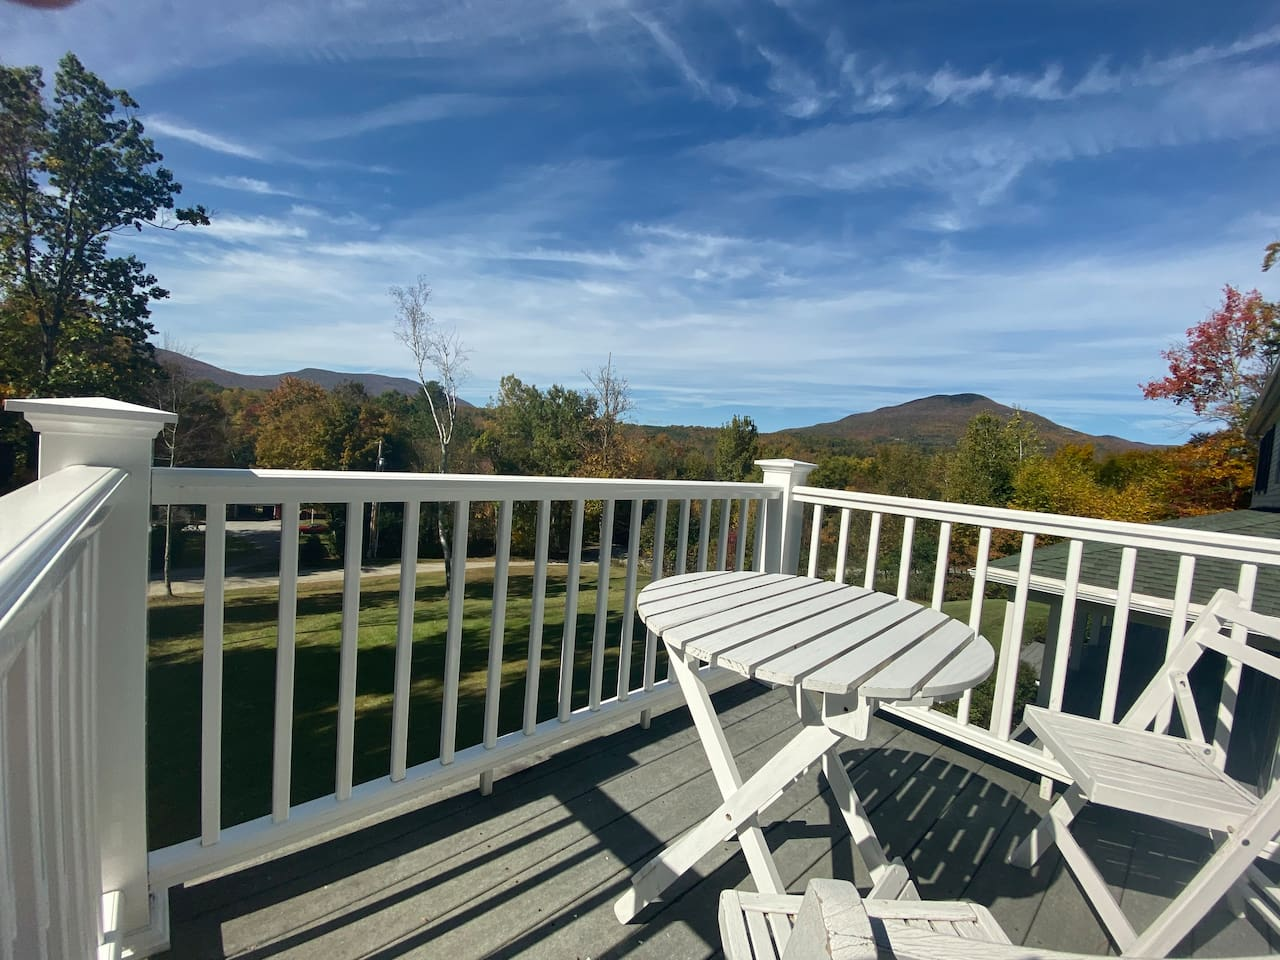 Panoramic view of Mt. Equinox, Little Equinox, and Mt. Aeolus from the private balcony